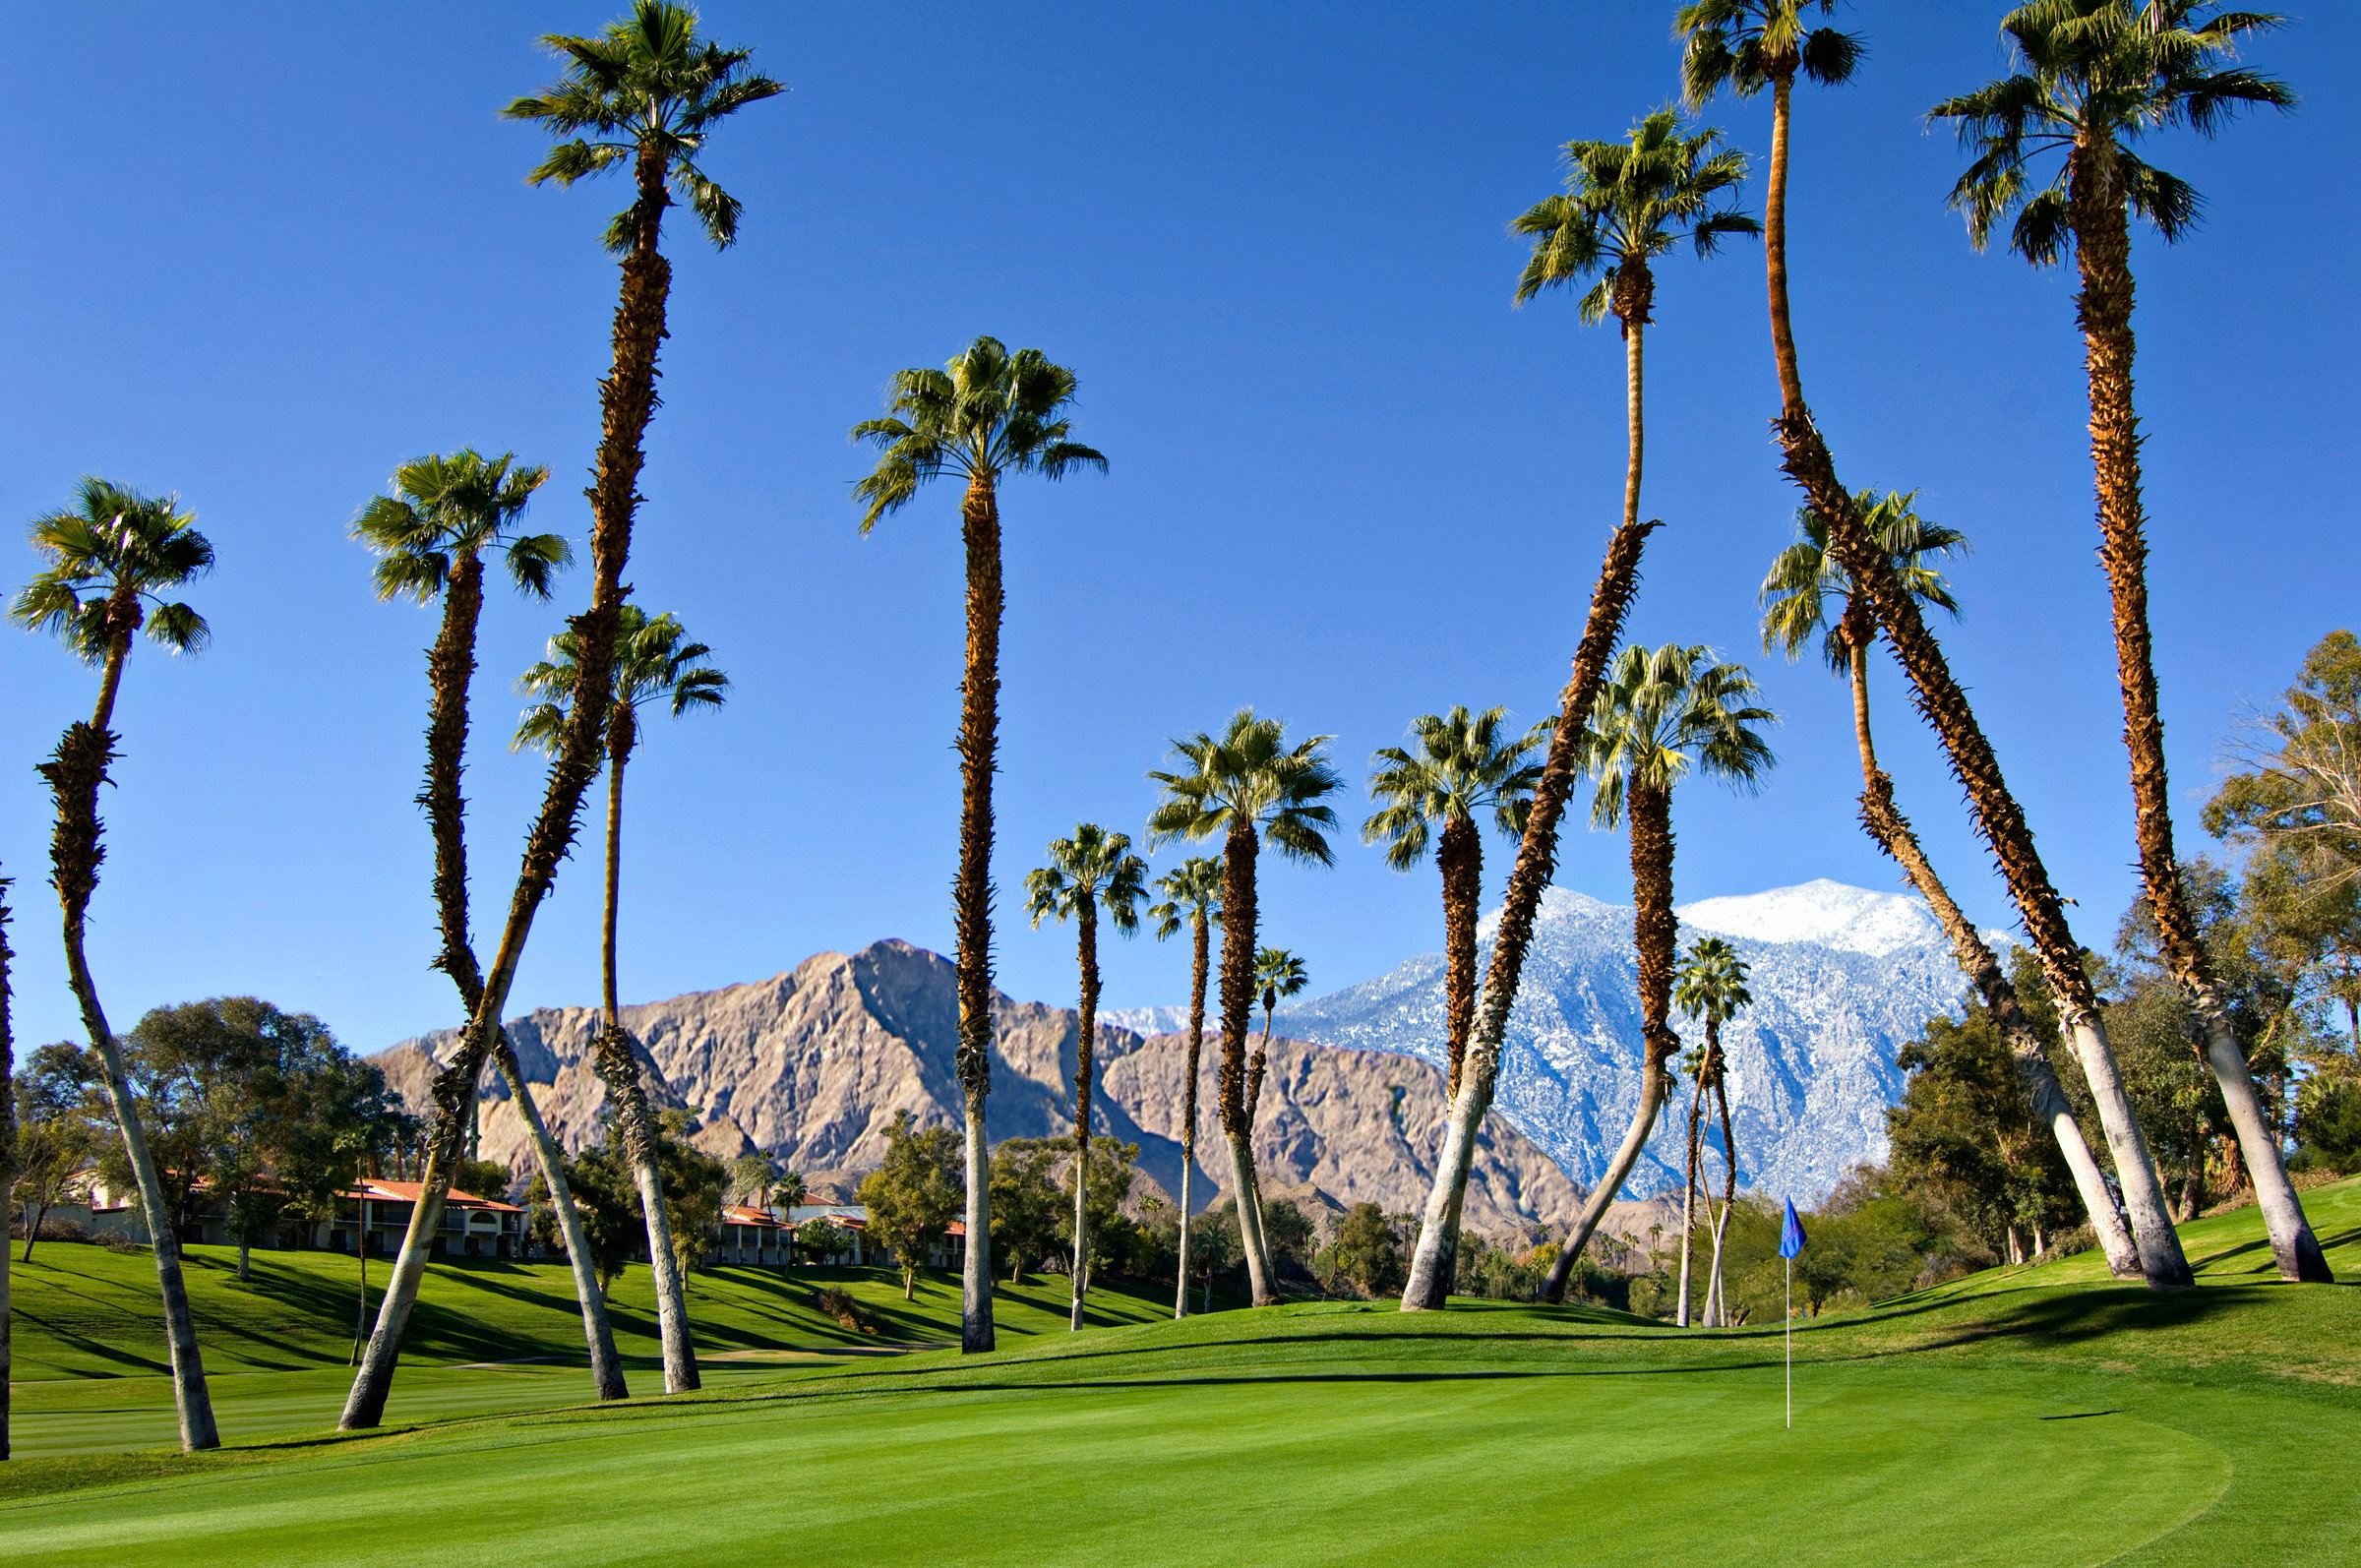 tree grass sky palm structure Nature plant green botany sport venue arecales woody plant golf course field palm family lawn meadow recreation park lush